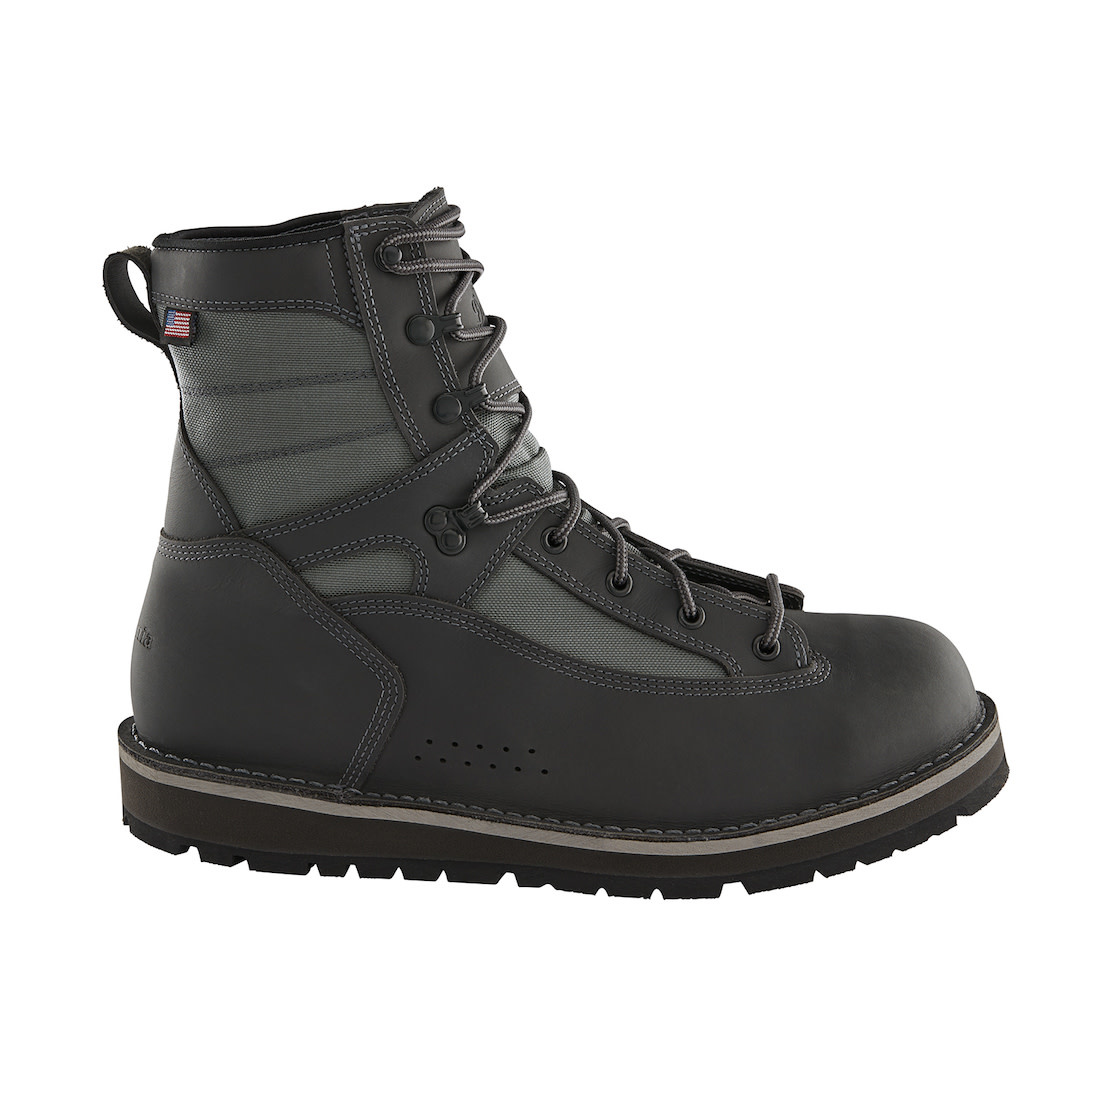 Patagonia Patagonia Danner Foot Tractor Wading Boots Sticky Rubber